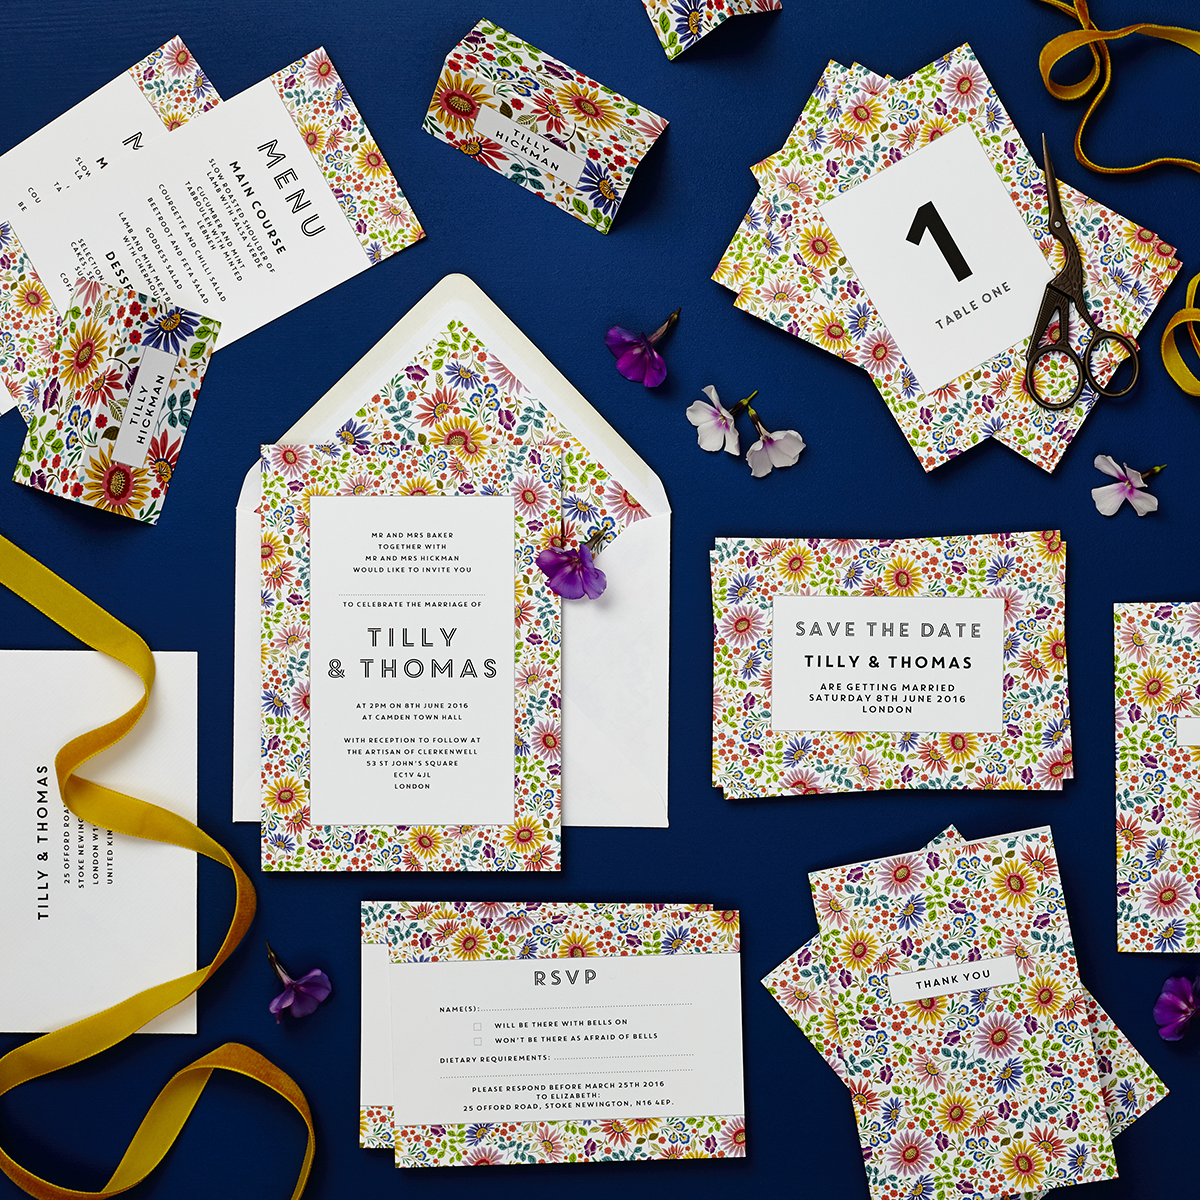 Lucy says I do wedding collections_bright flowers